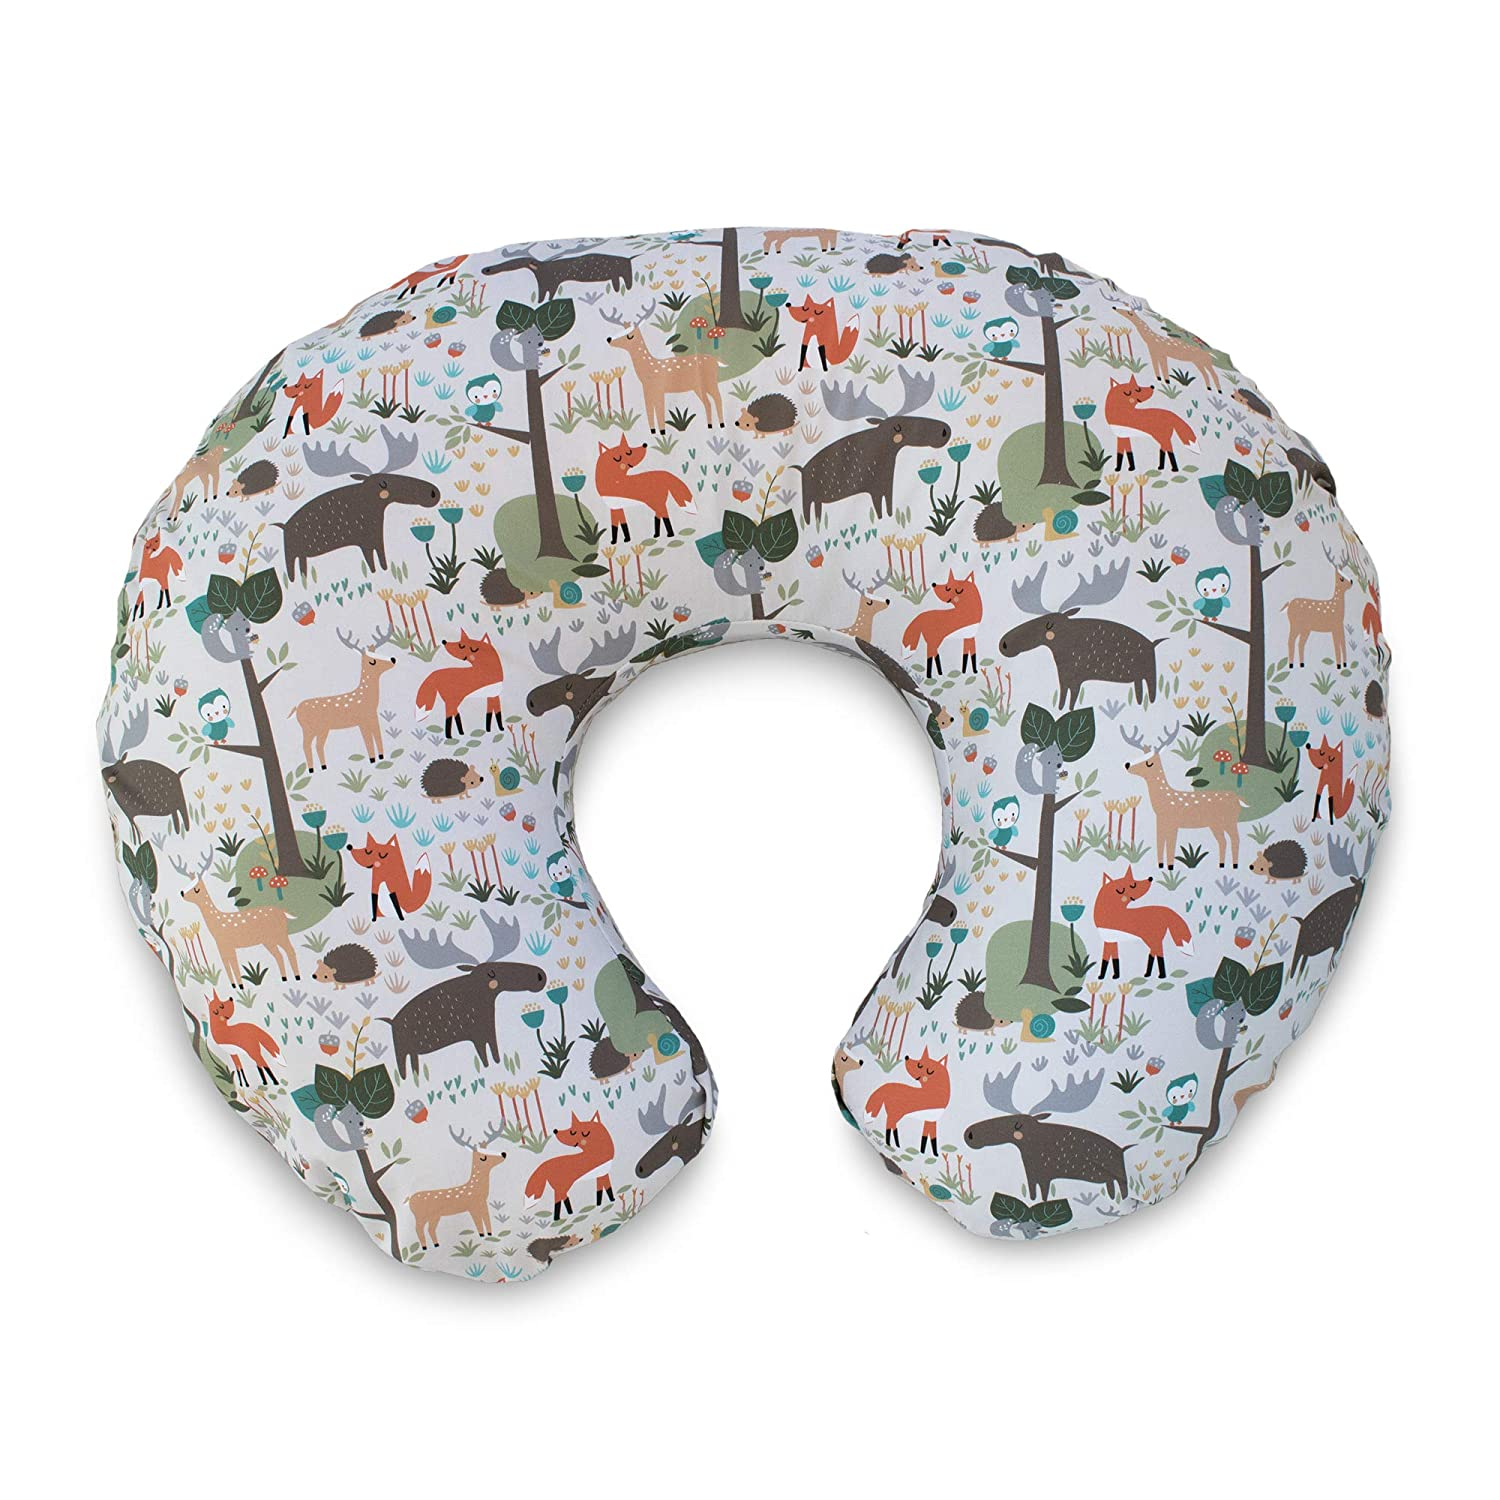 Boppy Cotton Blend Nursing Pillow and Positioner Slipcover, Earth Tone Woodland The Boppy Company 3100489K 6PK